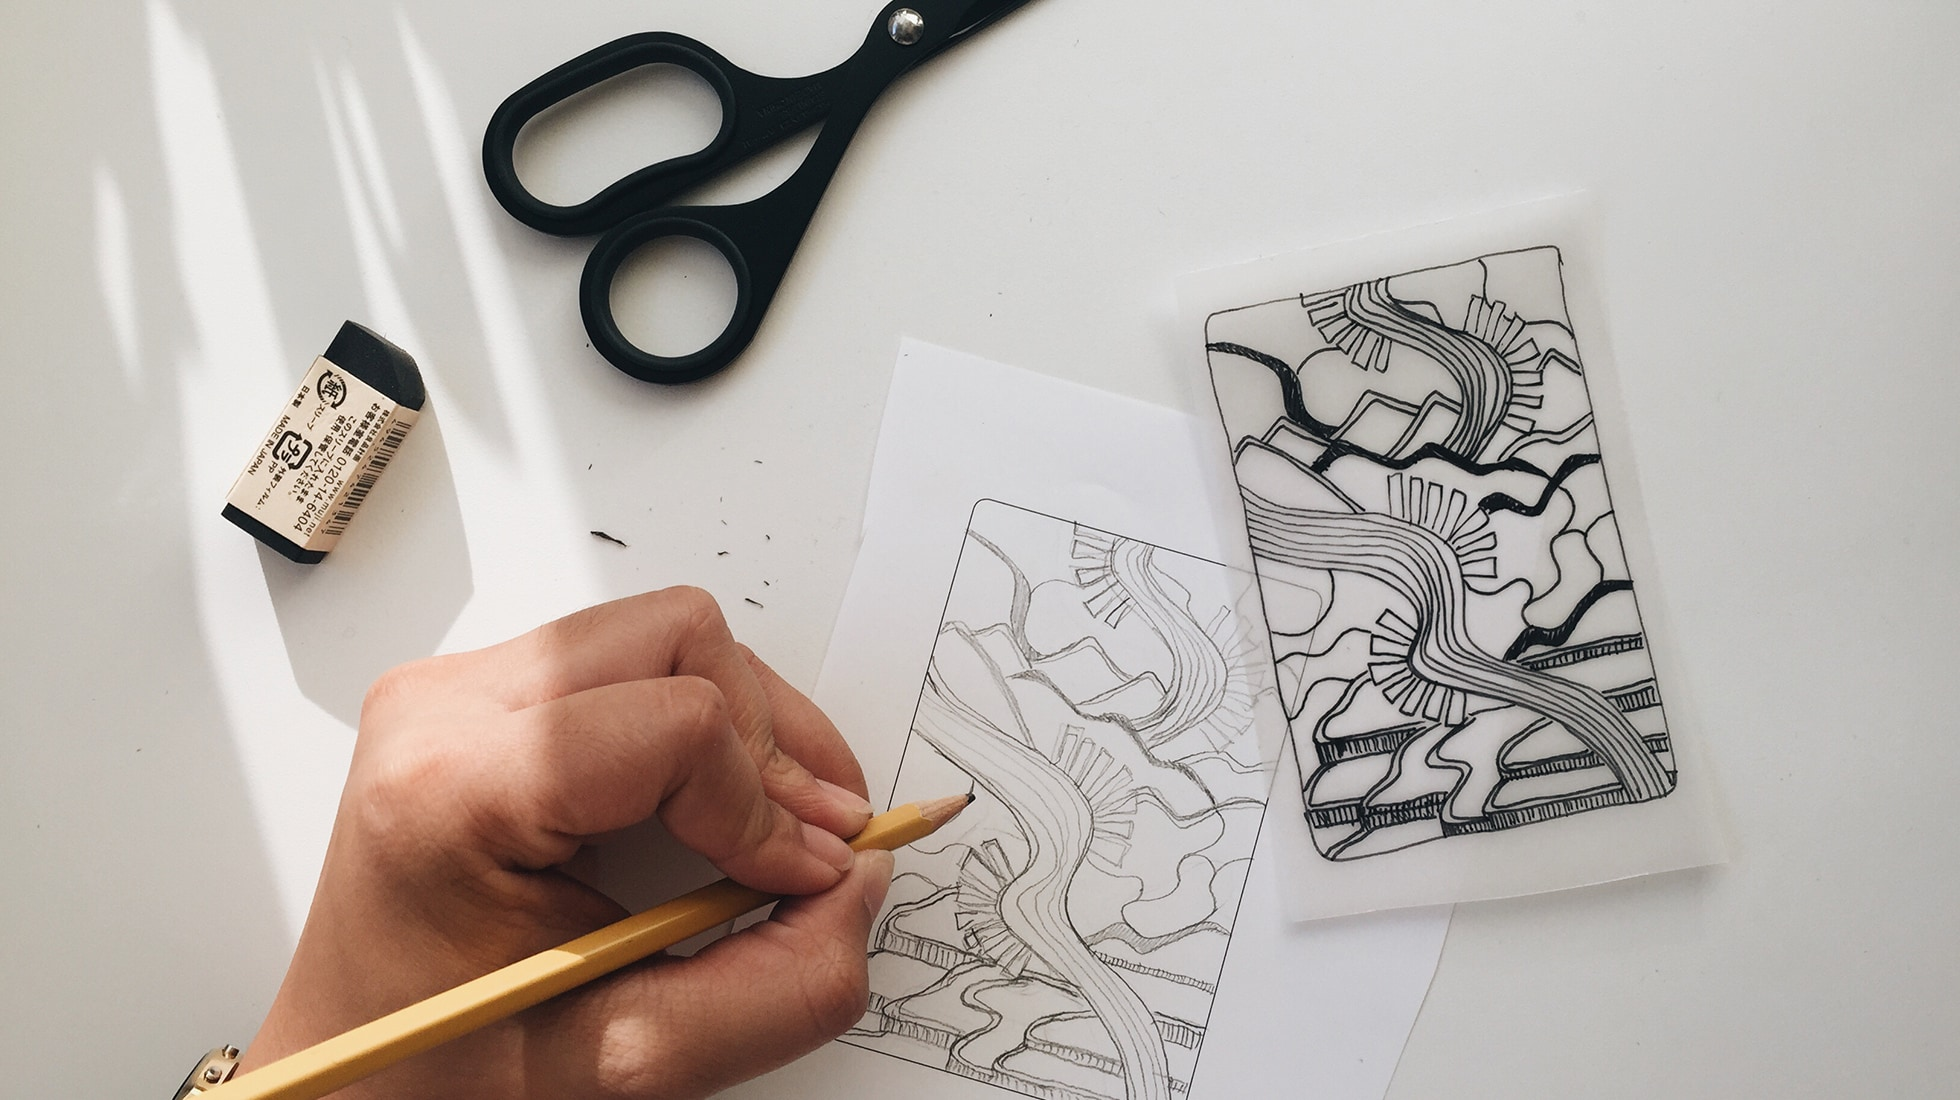 Overhead image of a hand holding a pencil over a pencil drawing, with an eraser, scissors, and an ink drawing of the same pencil drawing on tracing paper